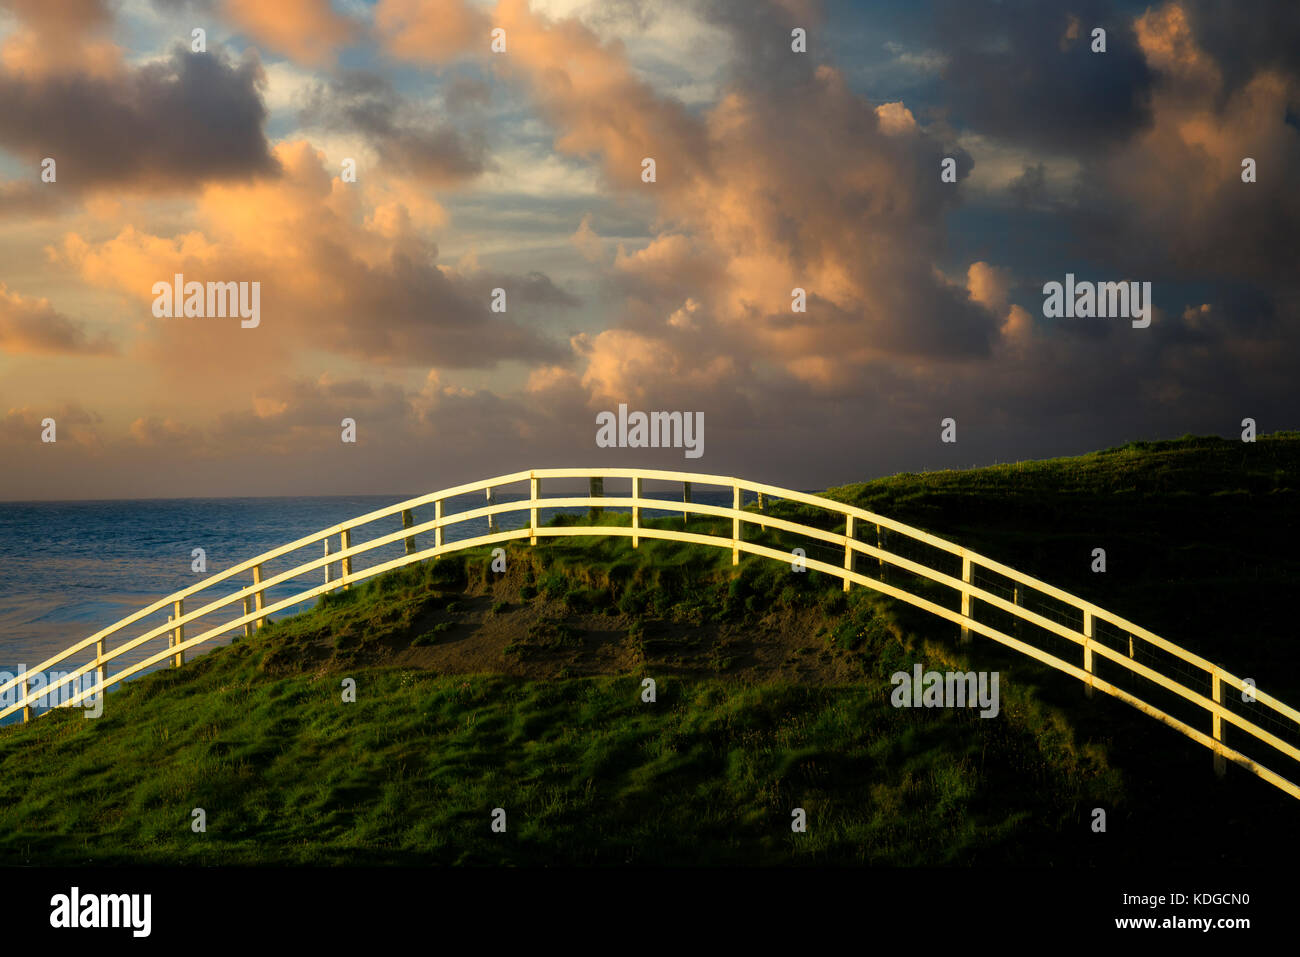 Fence at Cliffs of Moher, County Claire Ireland - Stock Image